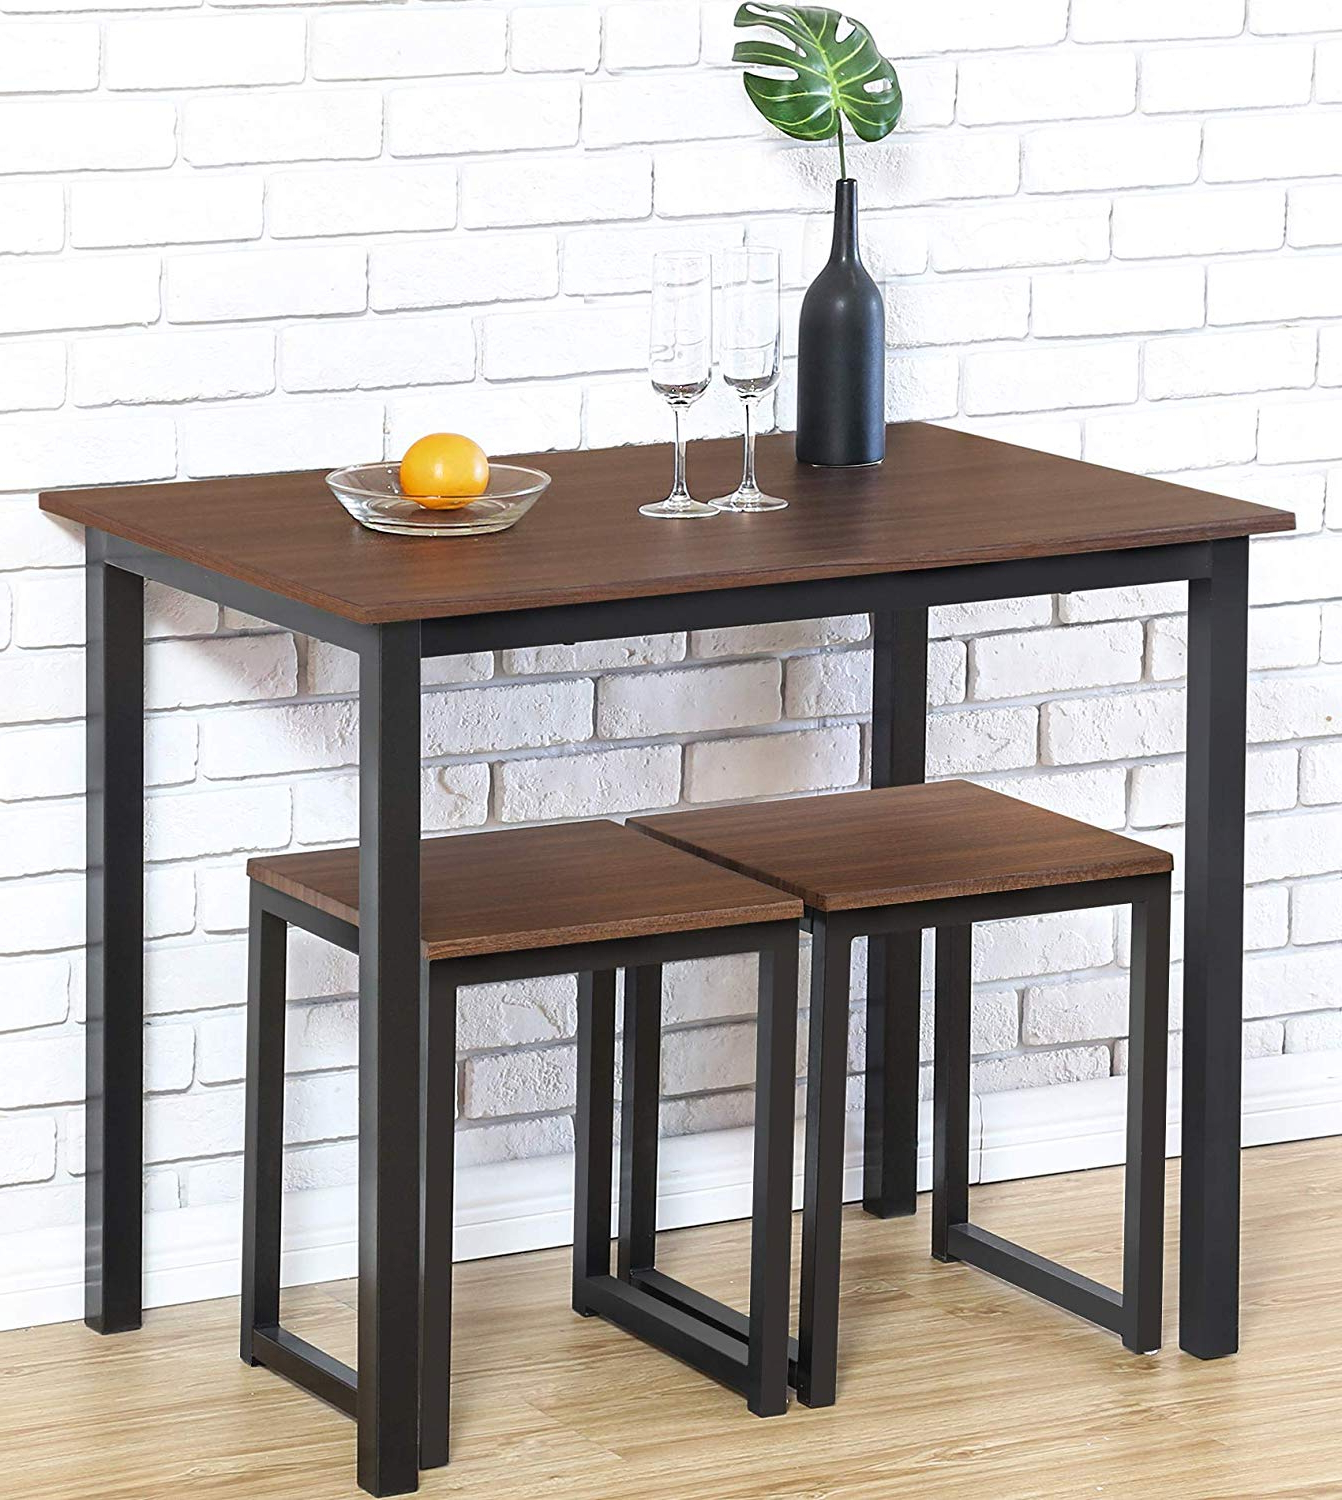 Homury Modern Wood 3 Piece Dining Set Studio Collection Soho Dining Table With Two Stools Home Kitchen Breakfast Table,brown Throughout Newest 3 Piece Breakfast Dining Sets (View 12 of 20)